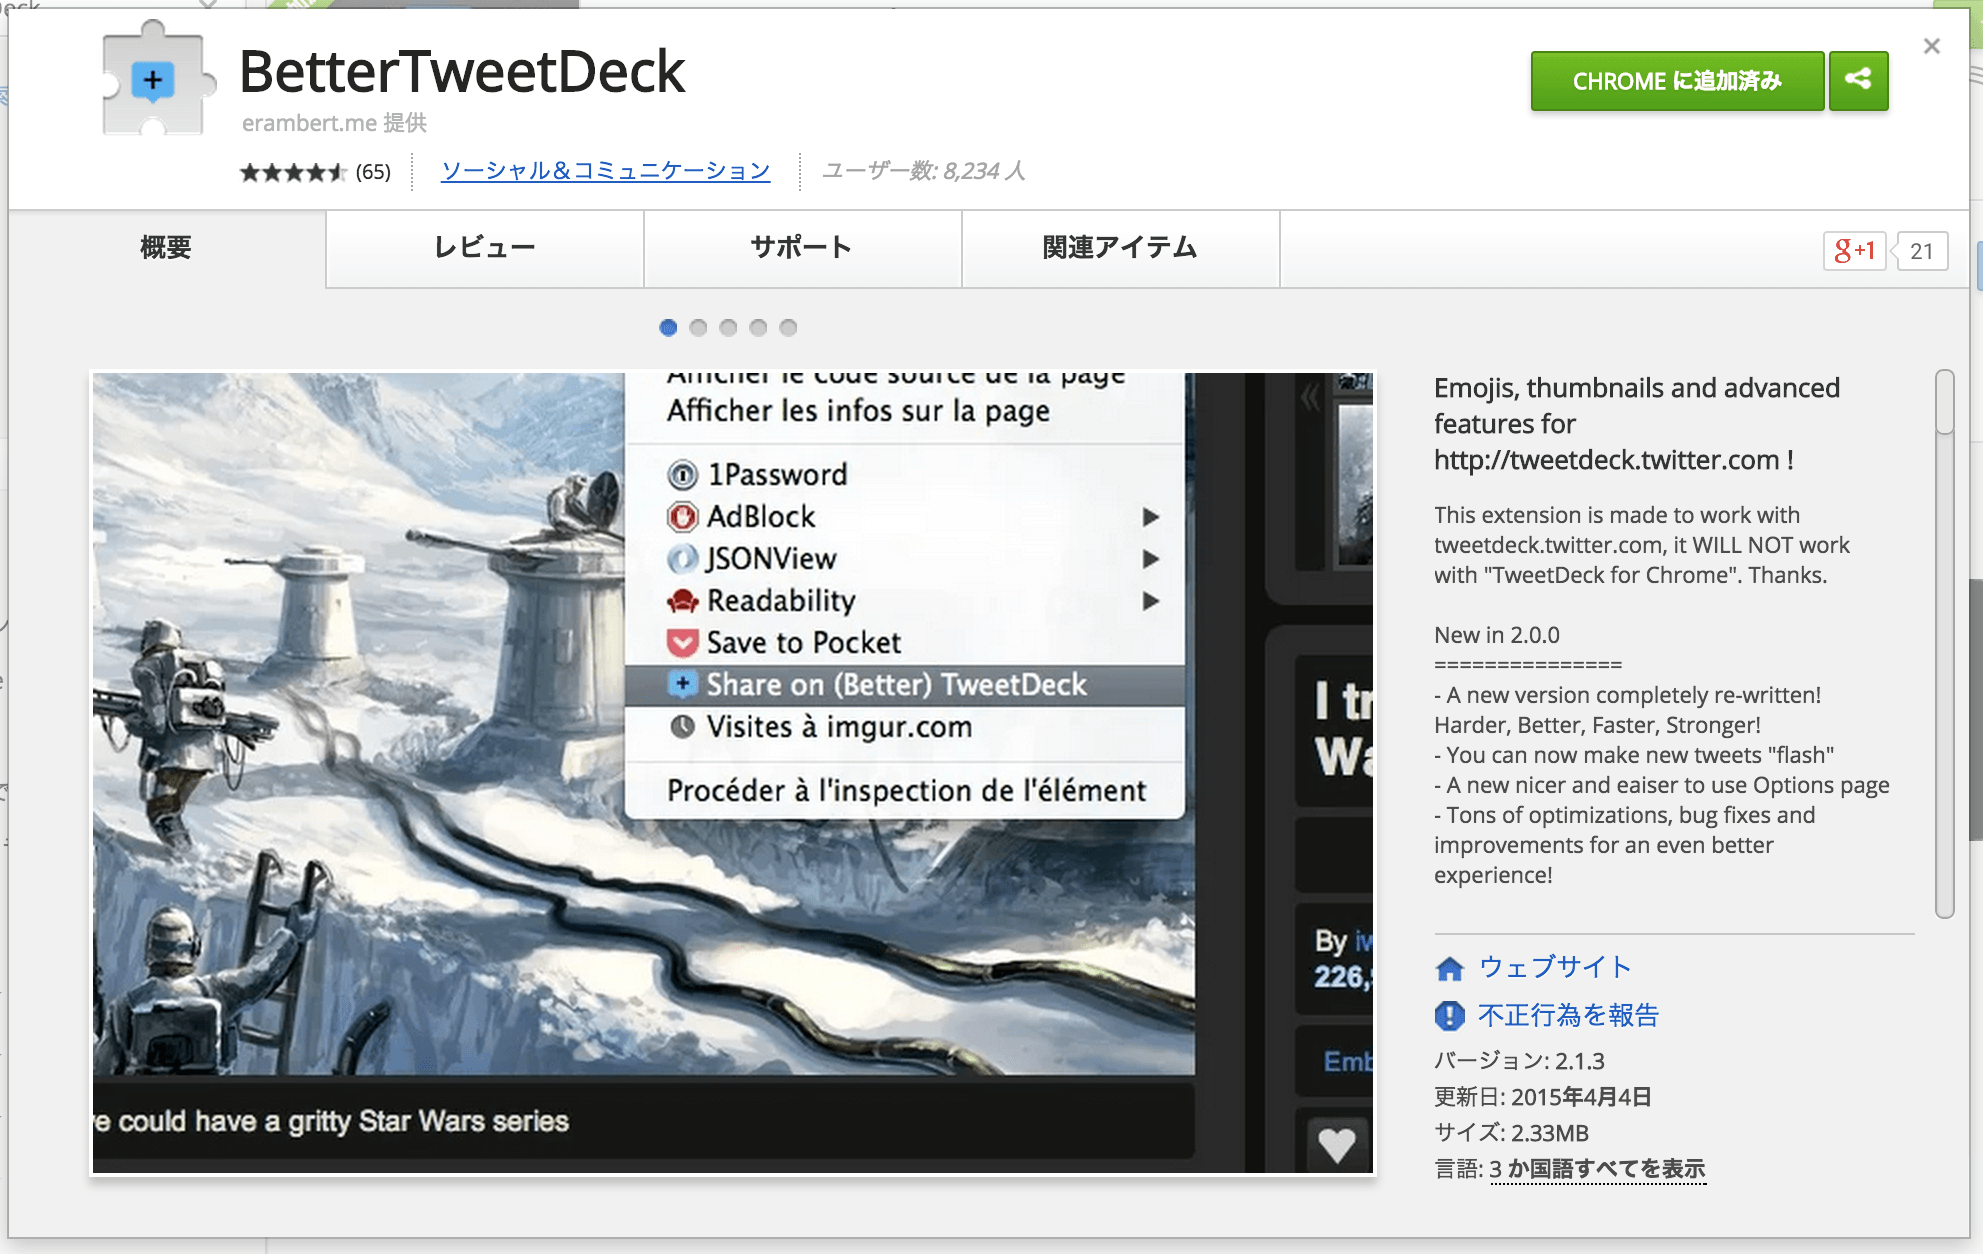 chrome-tweetdeck-extensions-bettertweetdeck_2